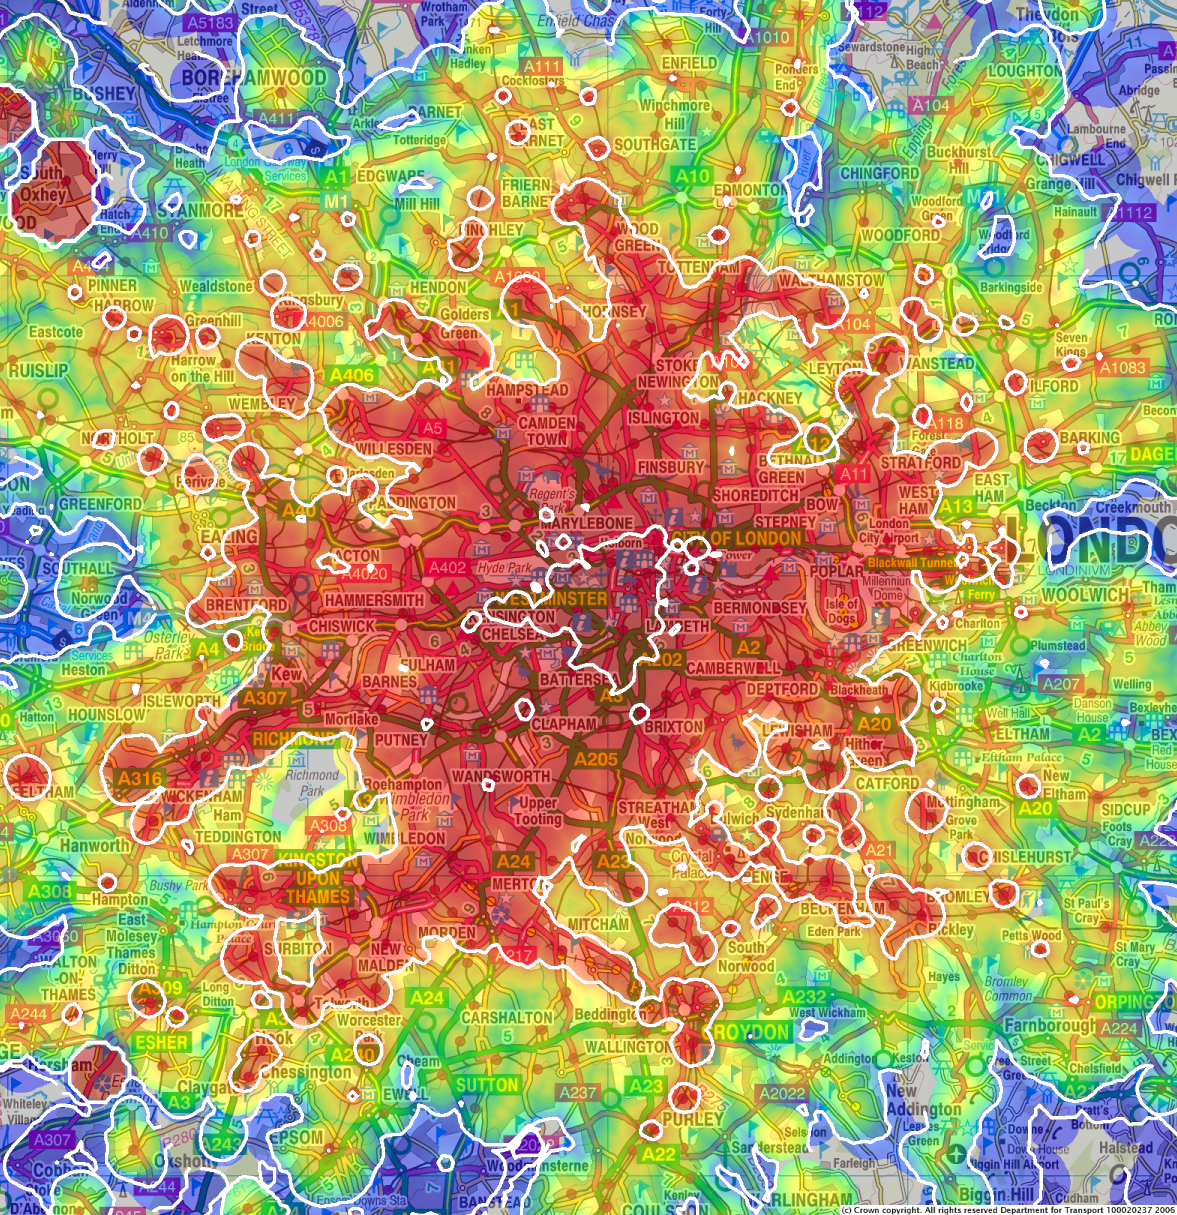 London And Surrounding Areas Map.Travel Time Maps And Their Uses Mysociety